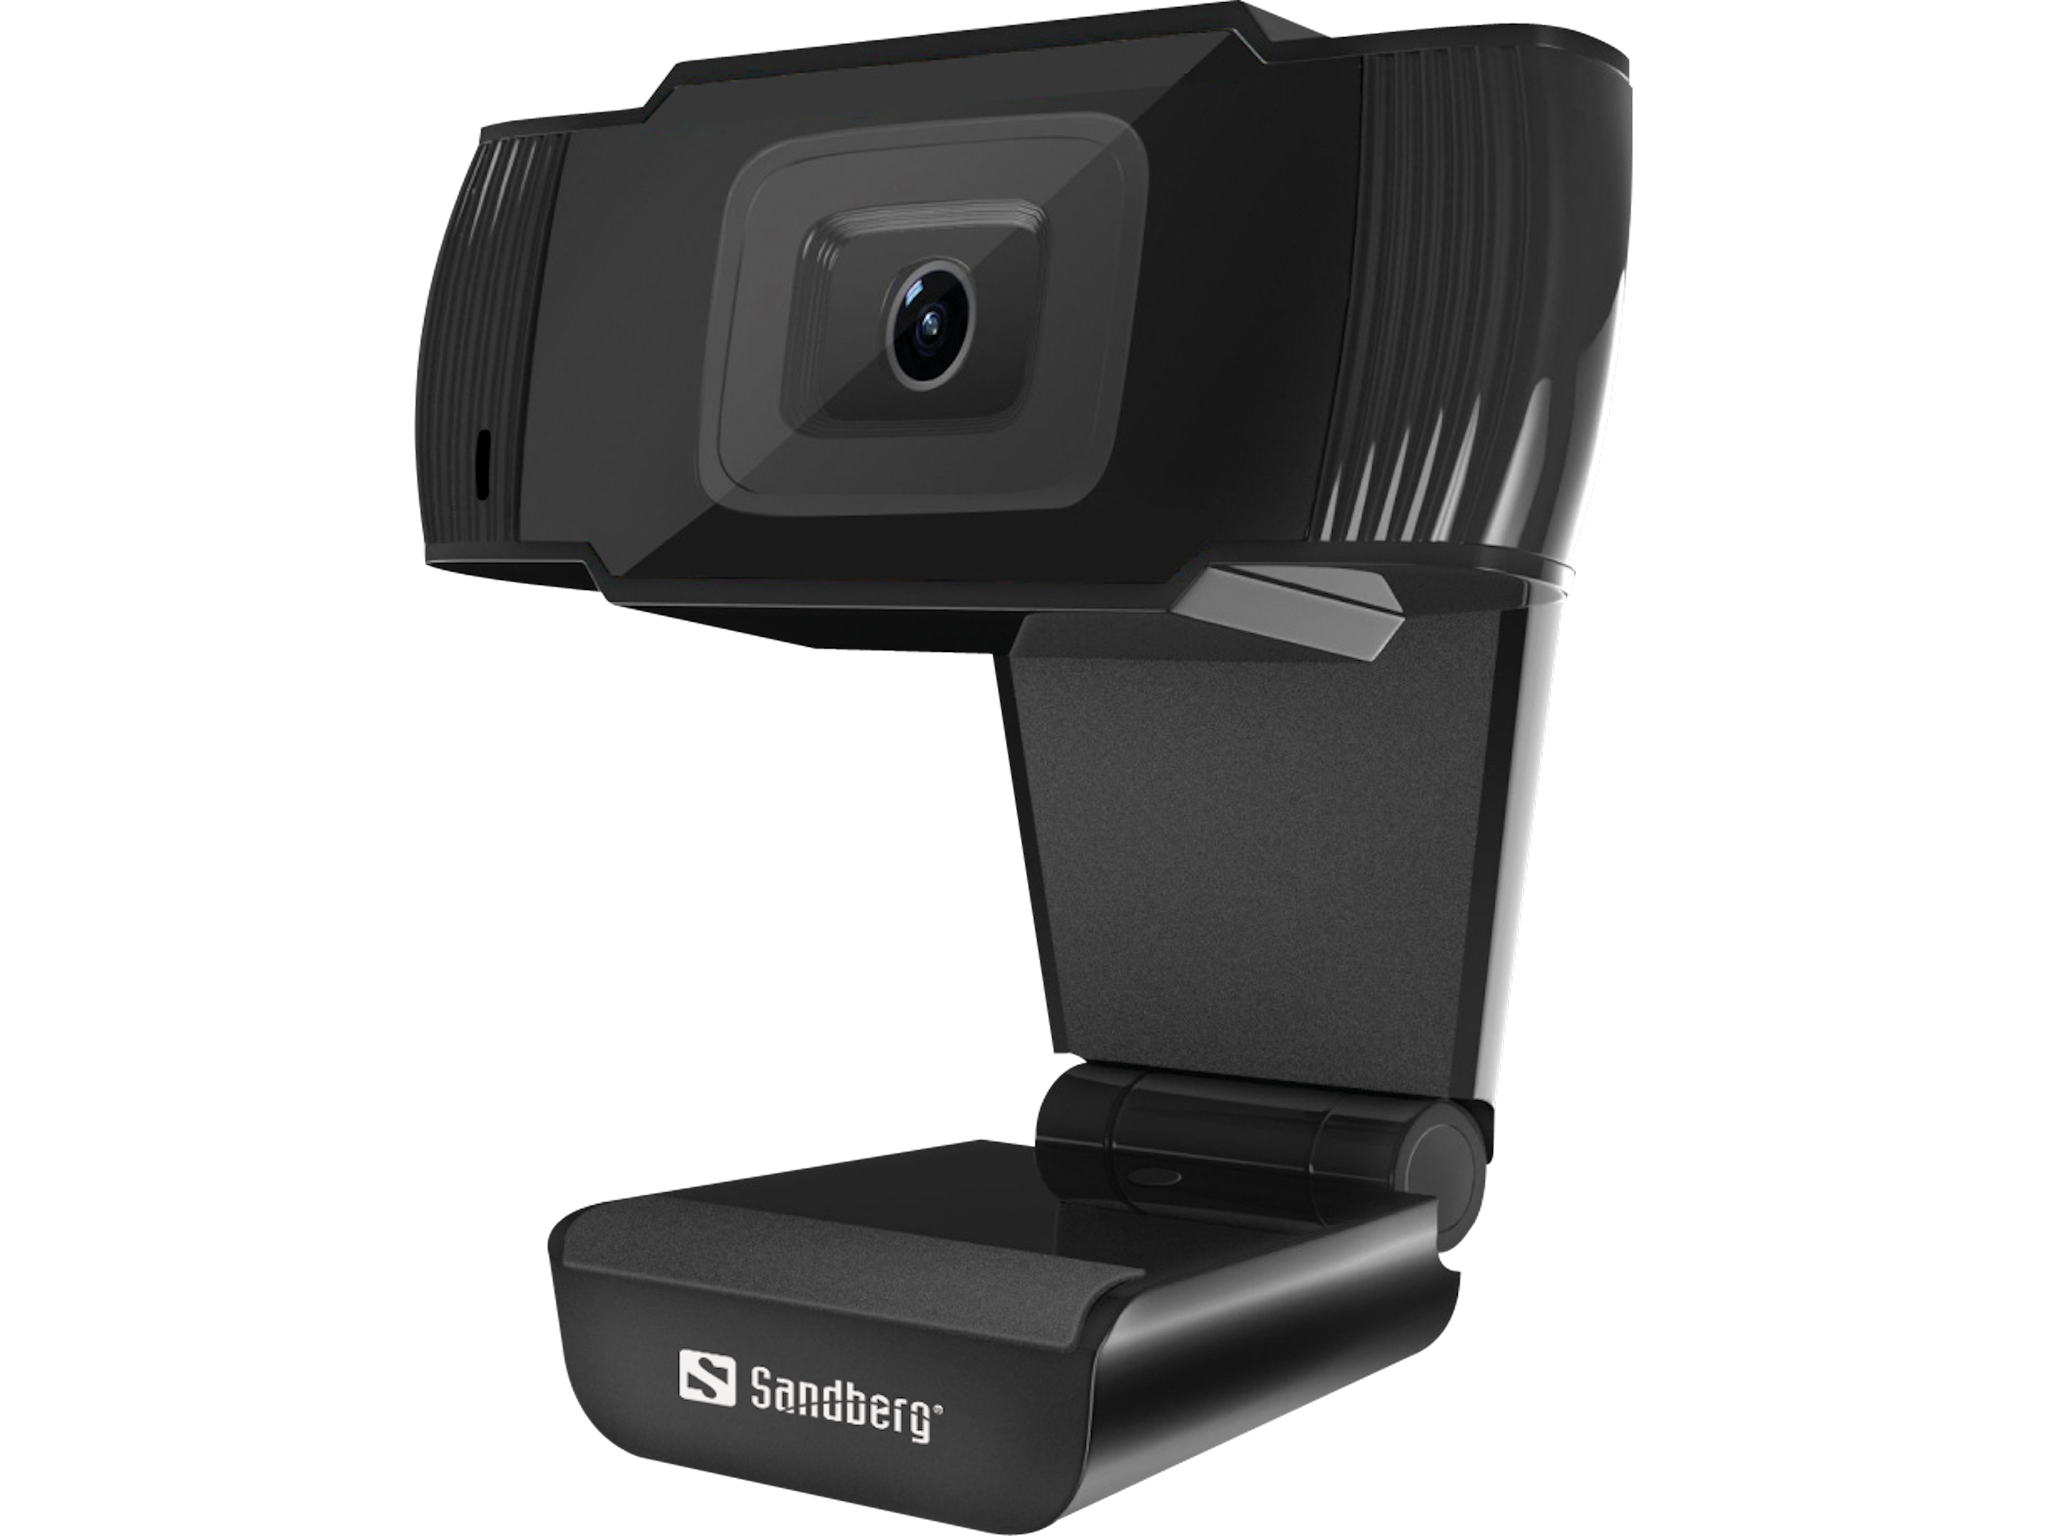 Sandberg USB Webcam 480P Saver (333-95)